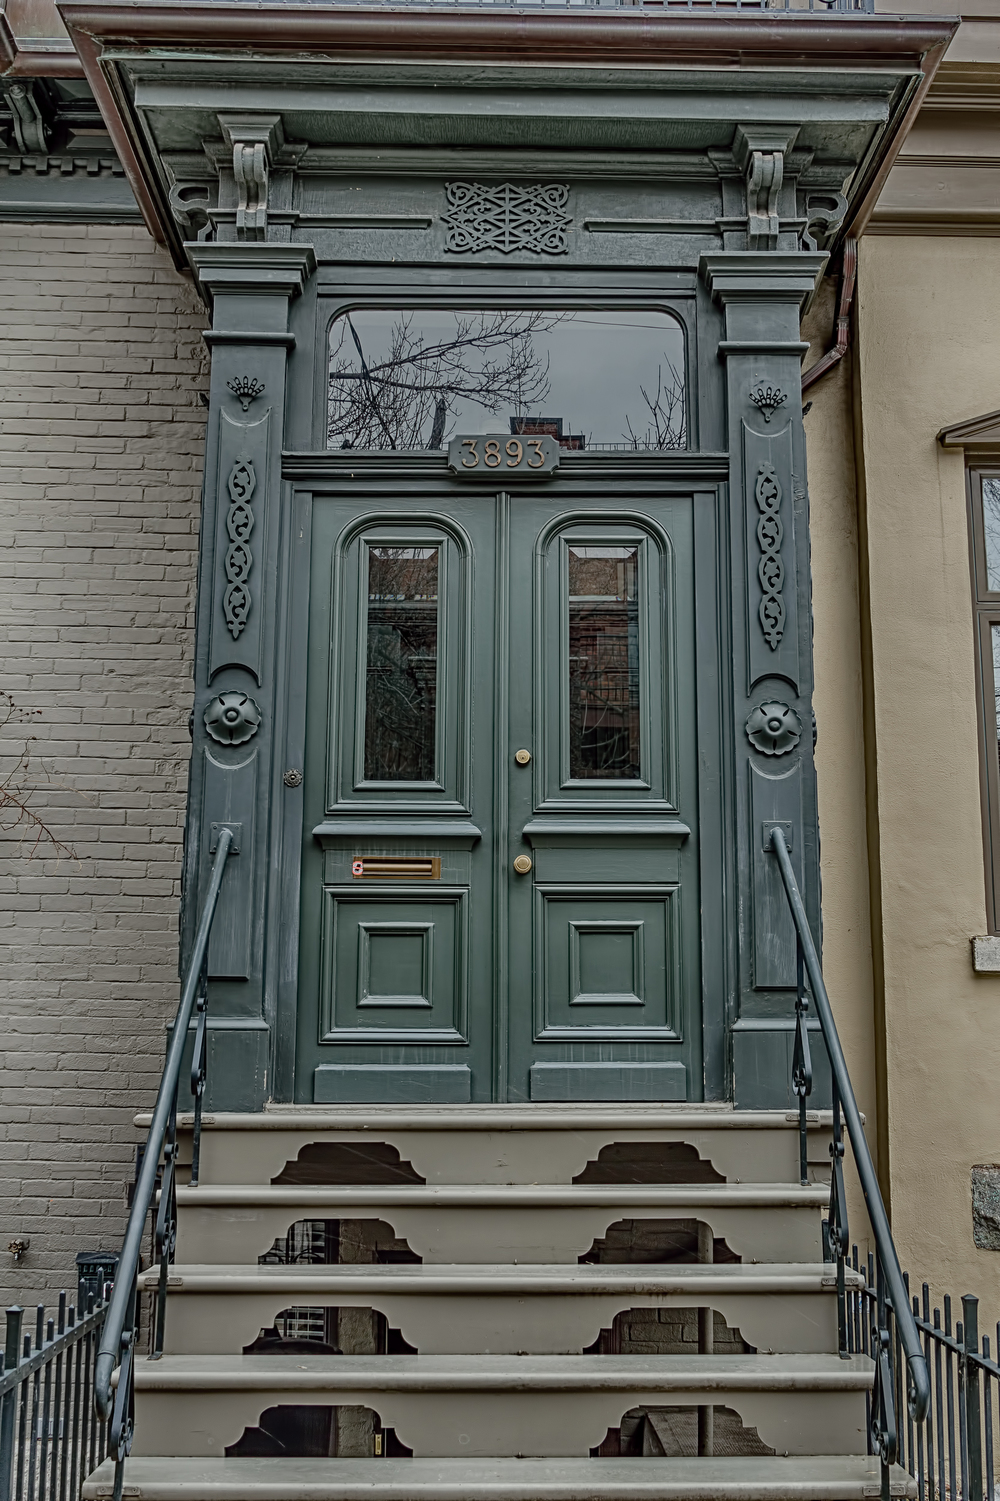 20140405_Architecture neat rue Roy & Colonial_IMG_3314_HDR-M.jpg